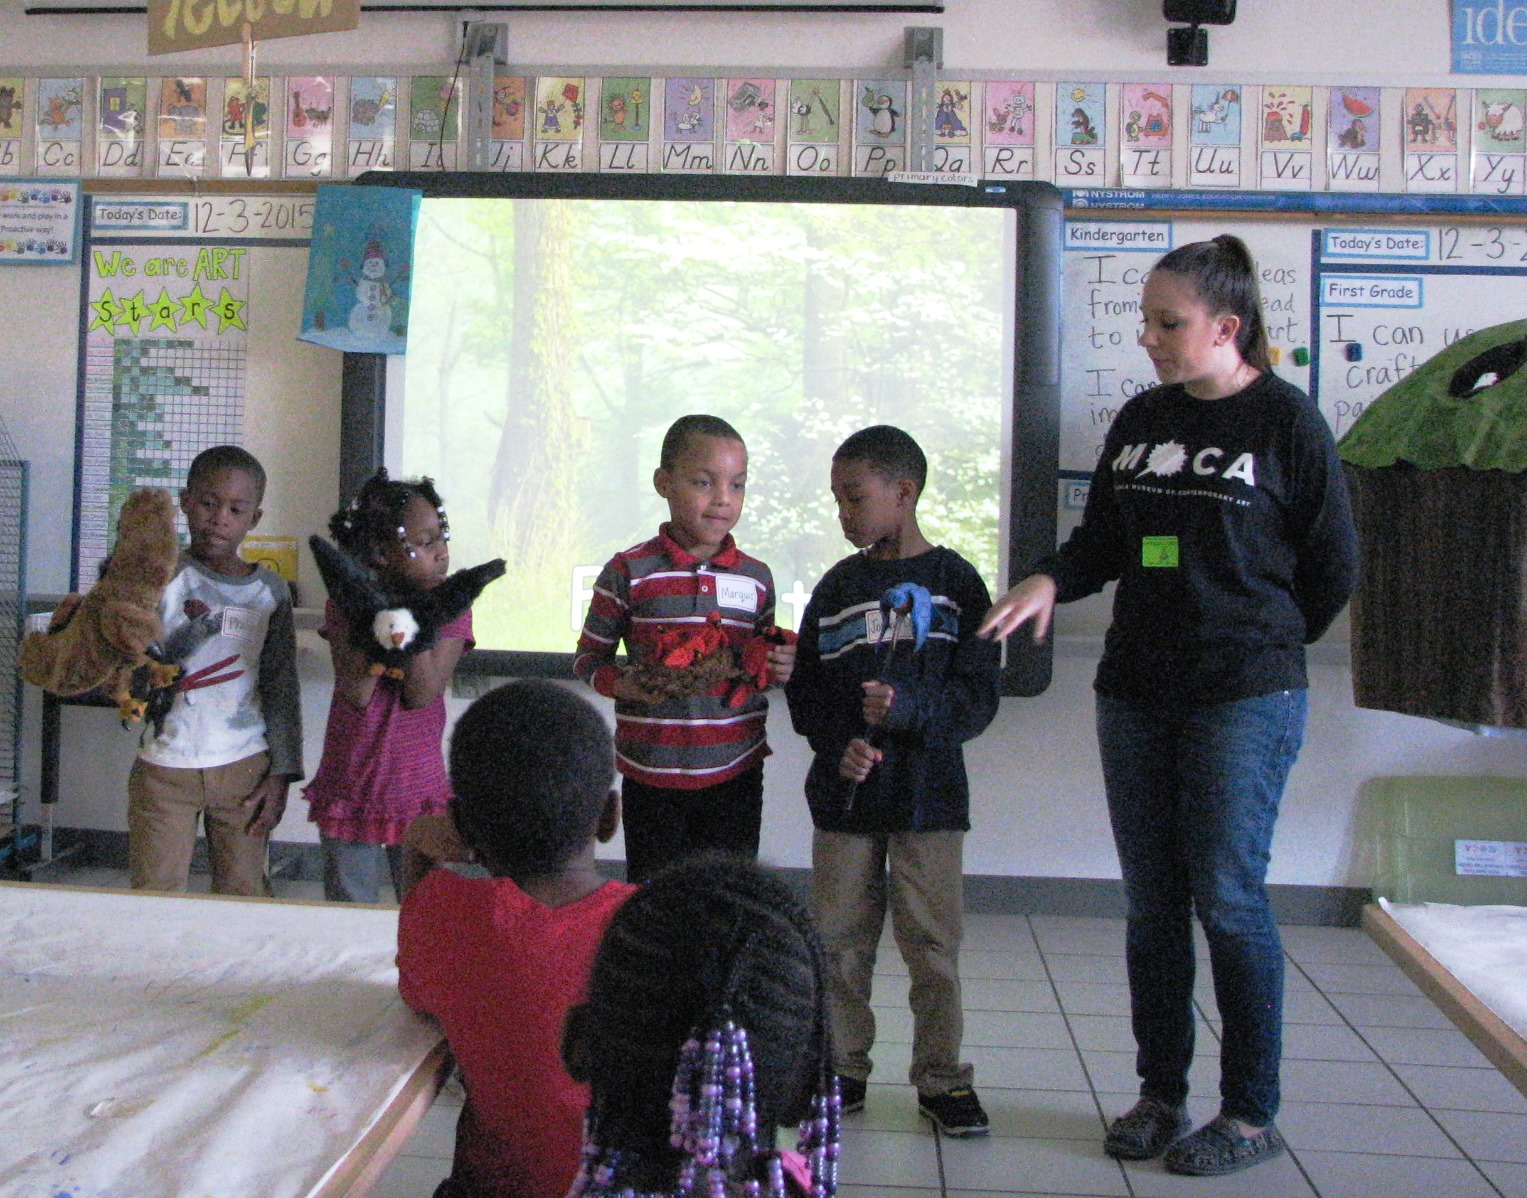 First-graders Philip Thomas, Ramyah King, Marquis Day and Jordan Davis work with the outreach educator Melanie Columbus to show animals in the forest.